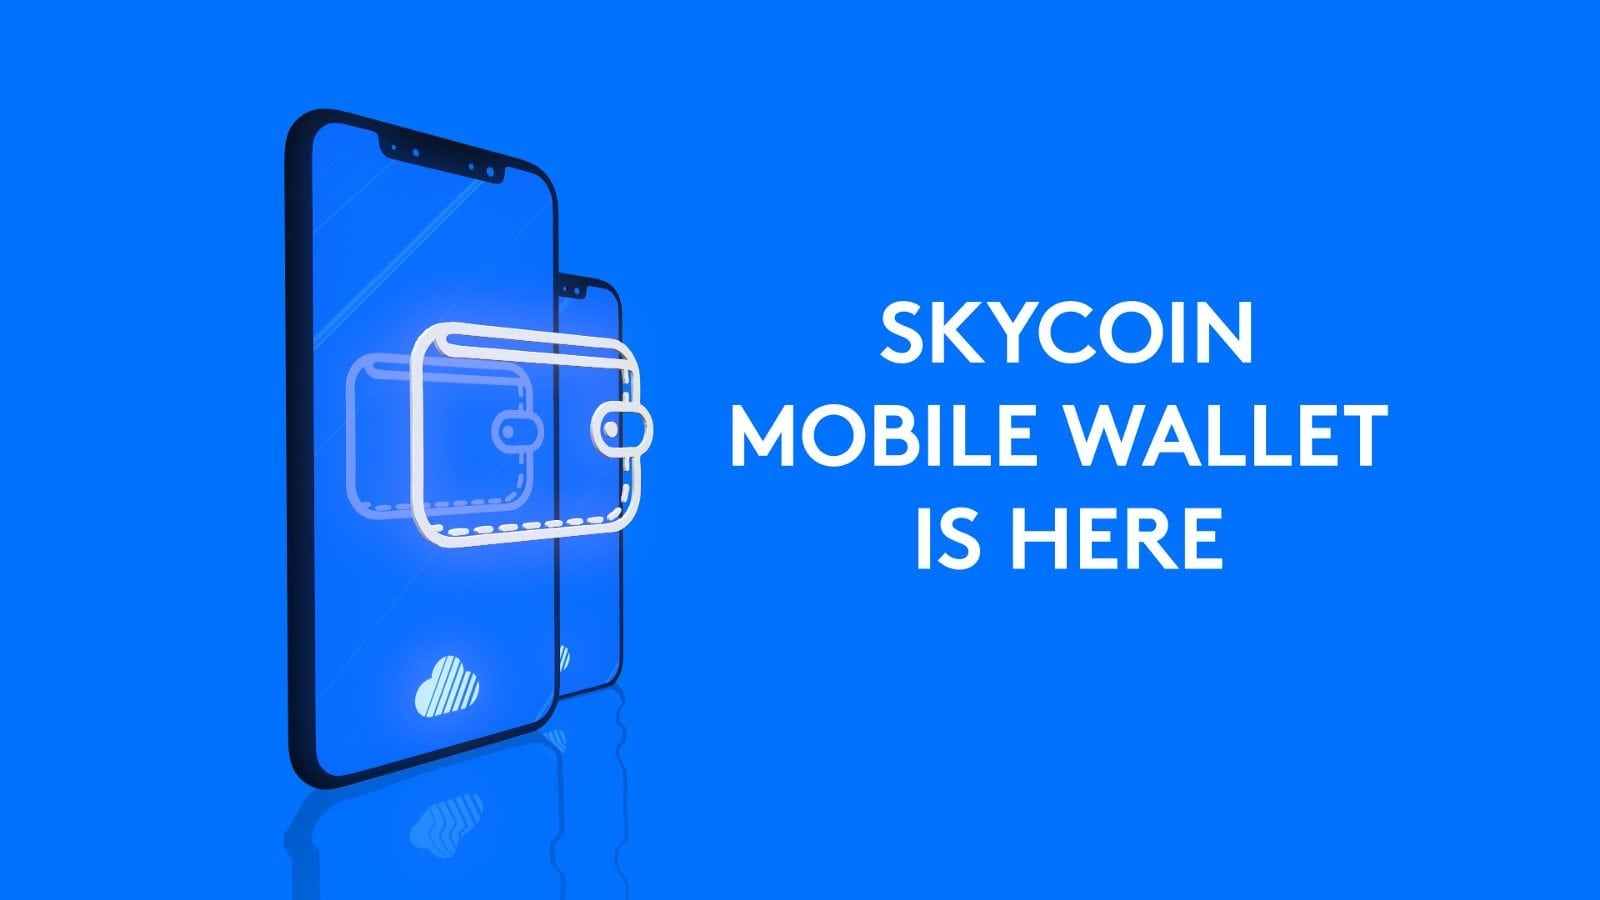 1 naY FdXCopkAk6ElnYvyzg - Skycoin Launches Android Mobile Wallet With Robust Features Built Around Security And Flexibility